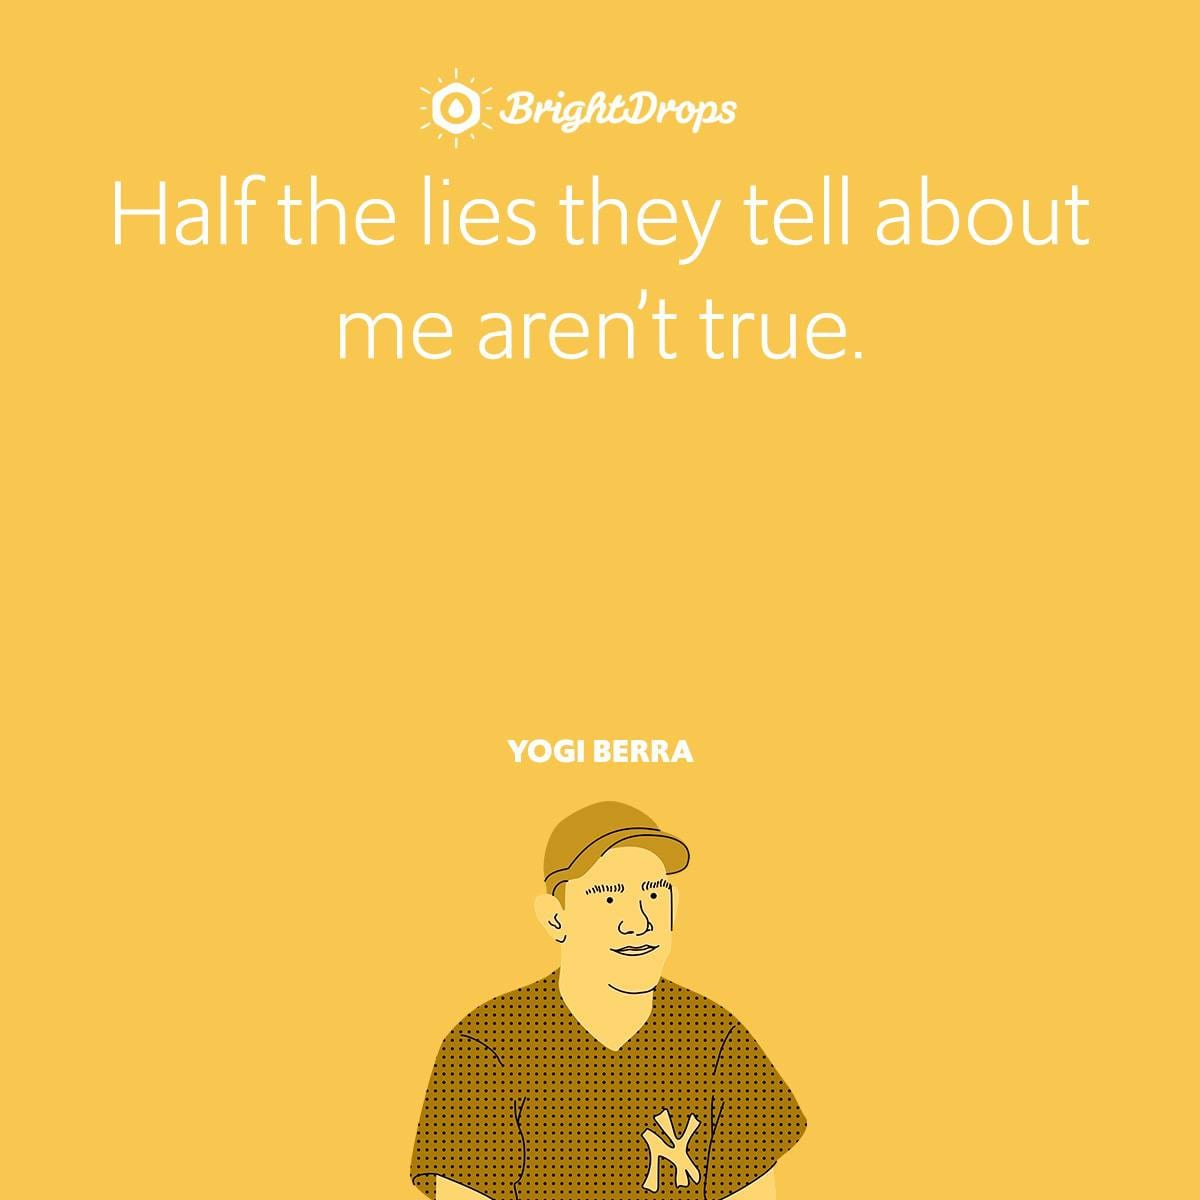 Half the lies they tell about me aren't true.